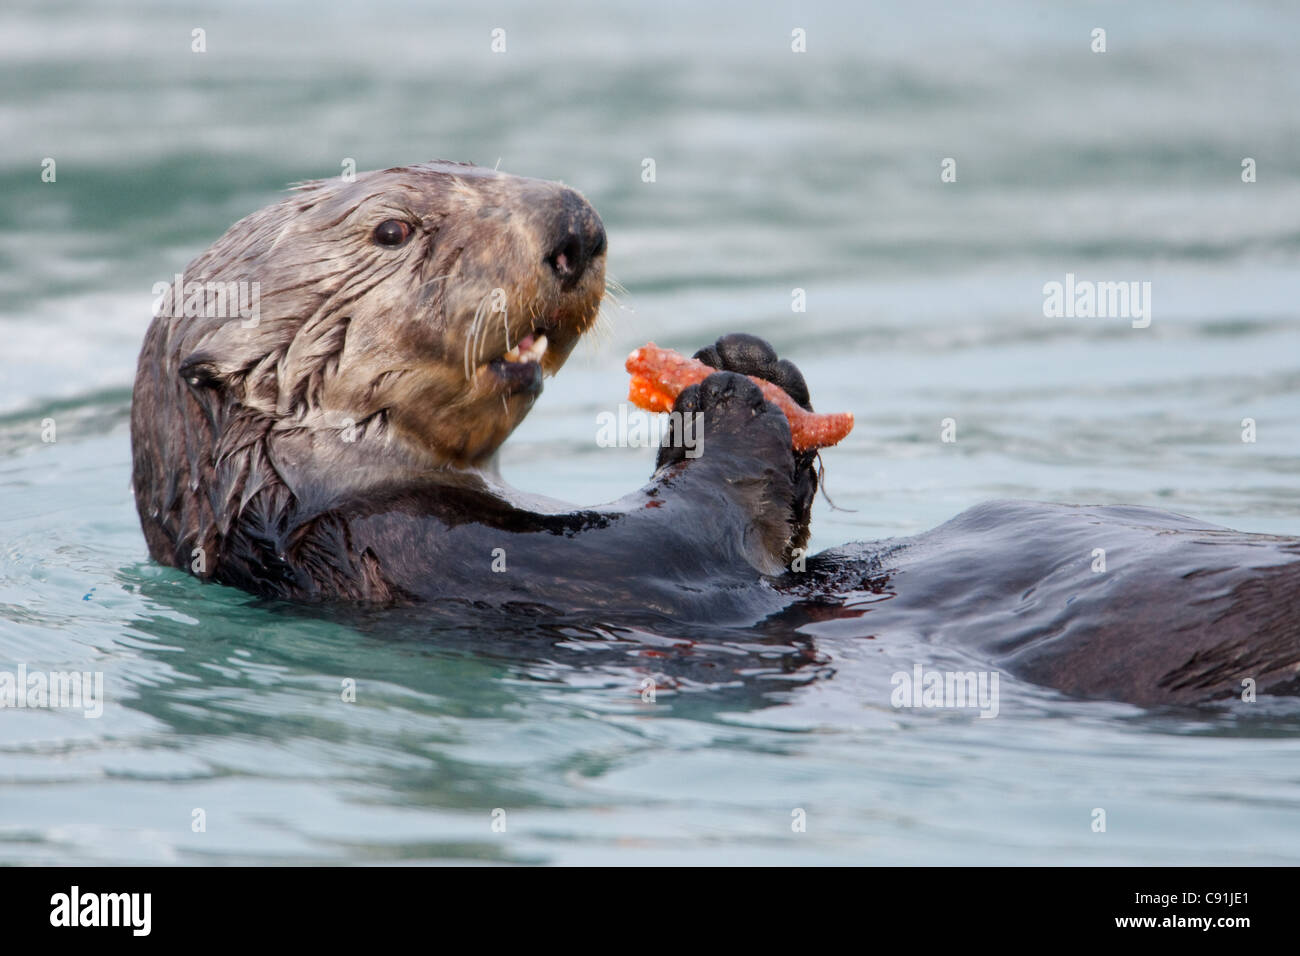 Sea otter carrying and eating leg of starfish, Prince William Sound, Southcentral Alaska, Winter - Stock Image